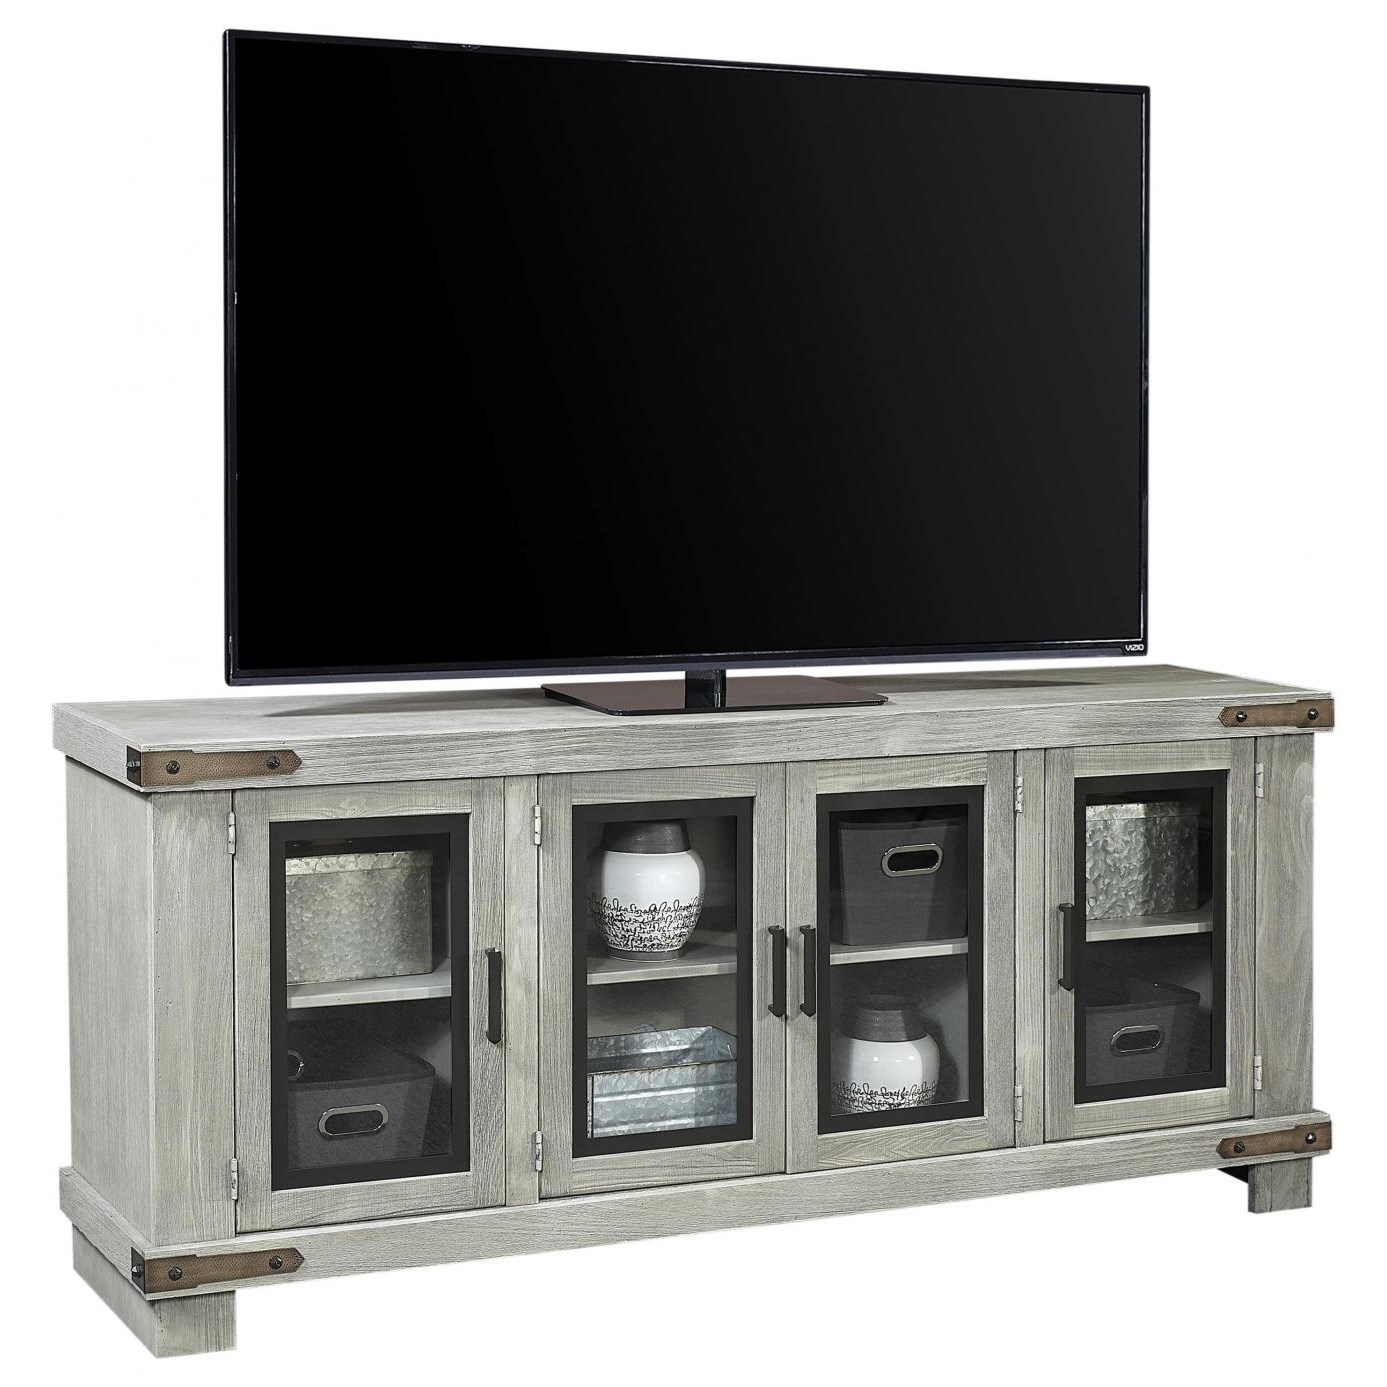 "Sawyer 78"" Console by Aspenhome at Baer's Furniture"